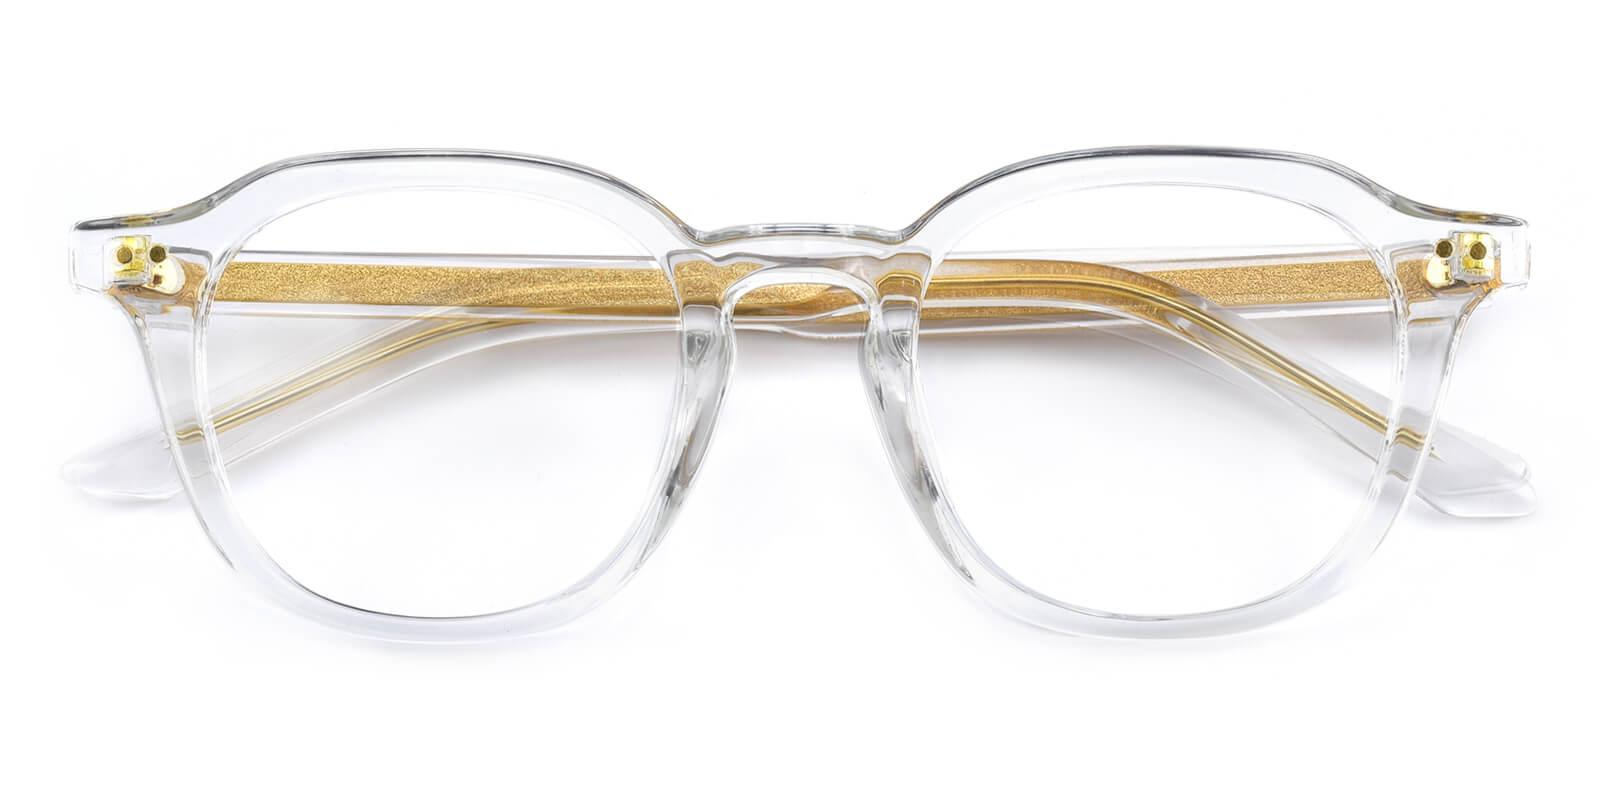 Dapper-Translucent-Round-Acetate-Eyeglasses-detail